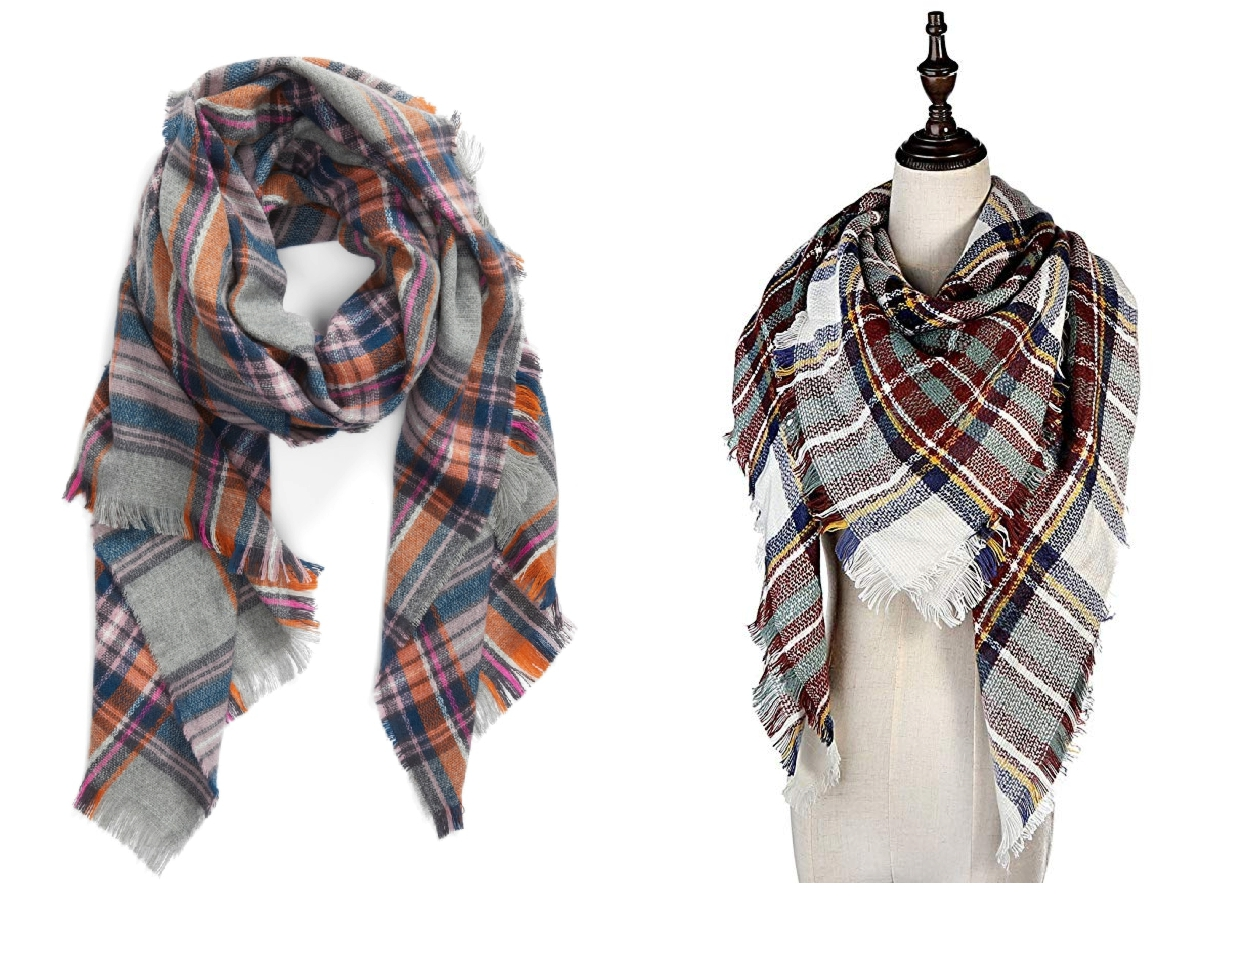 nordstrom anniversary sale dupes, plaid blanket scarf